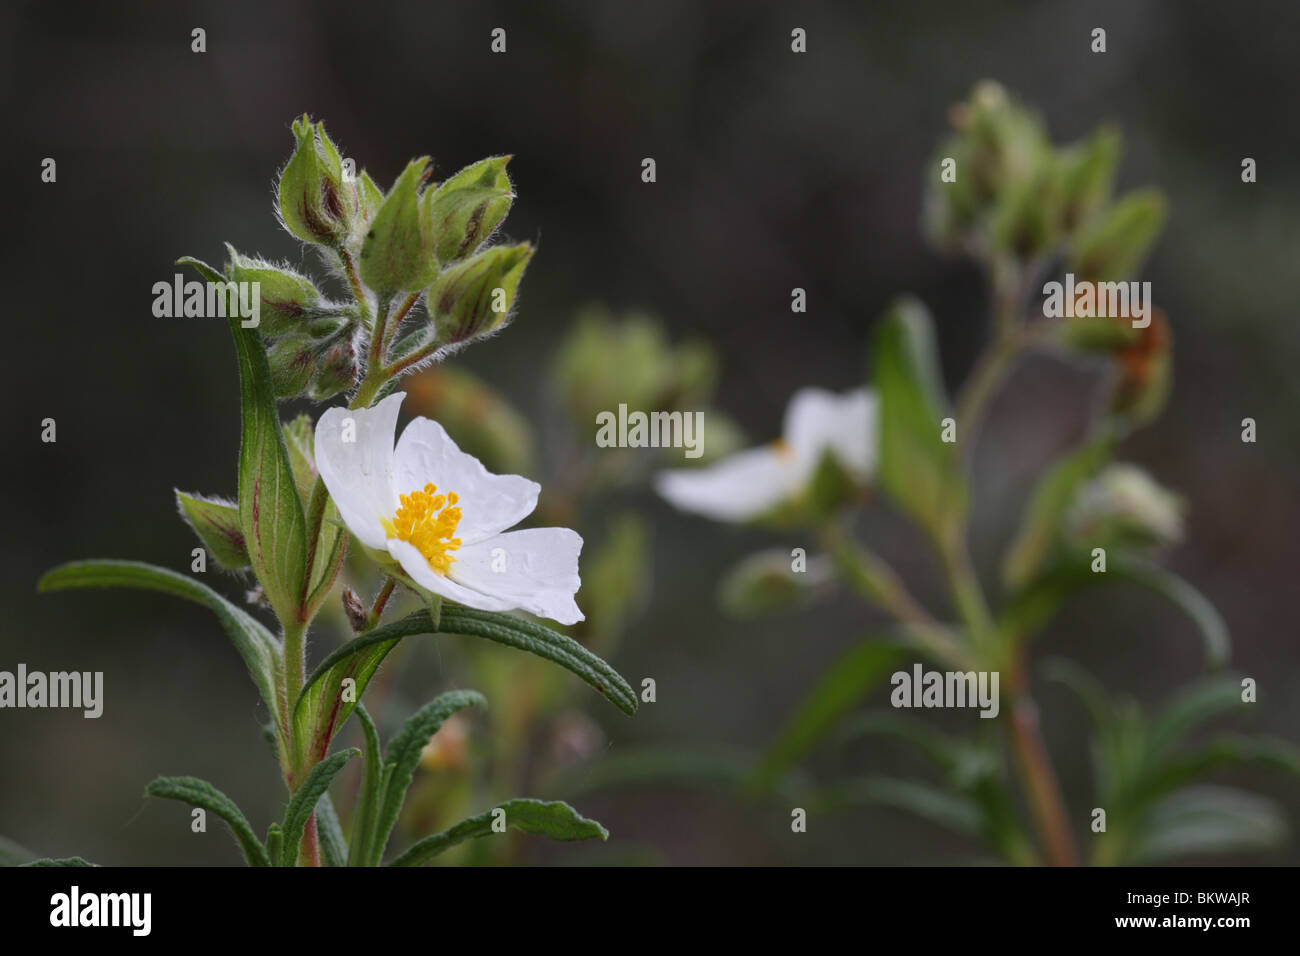 Bush With Small White Flowers Stock Photos Bush With Small White